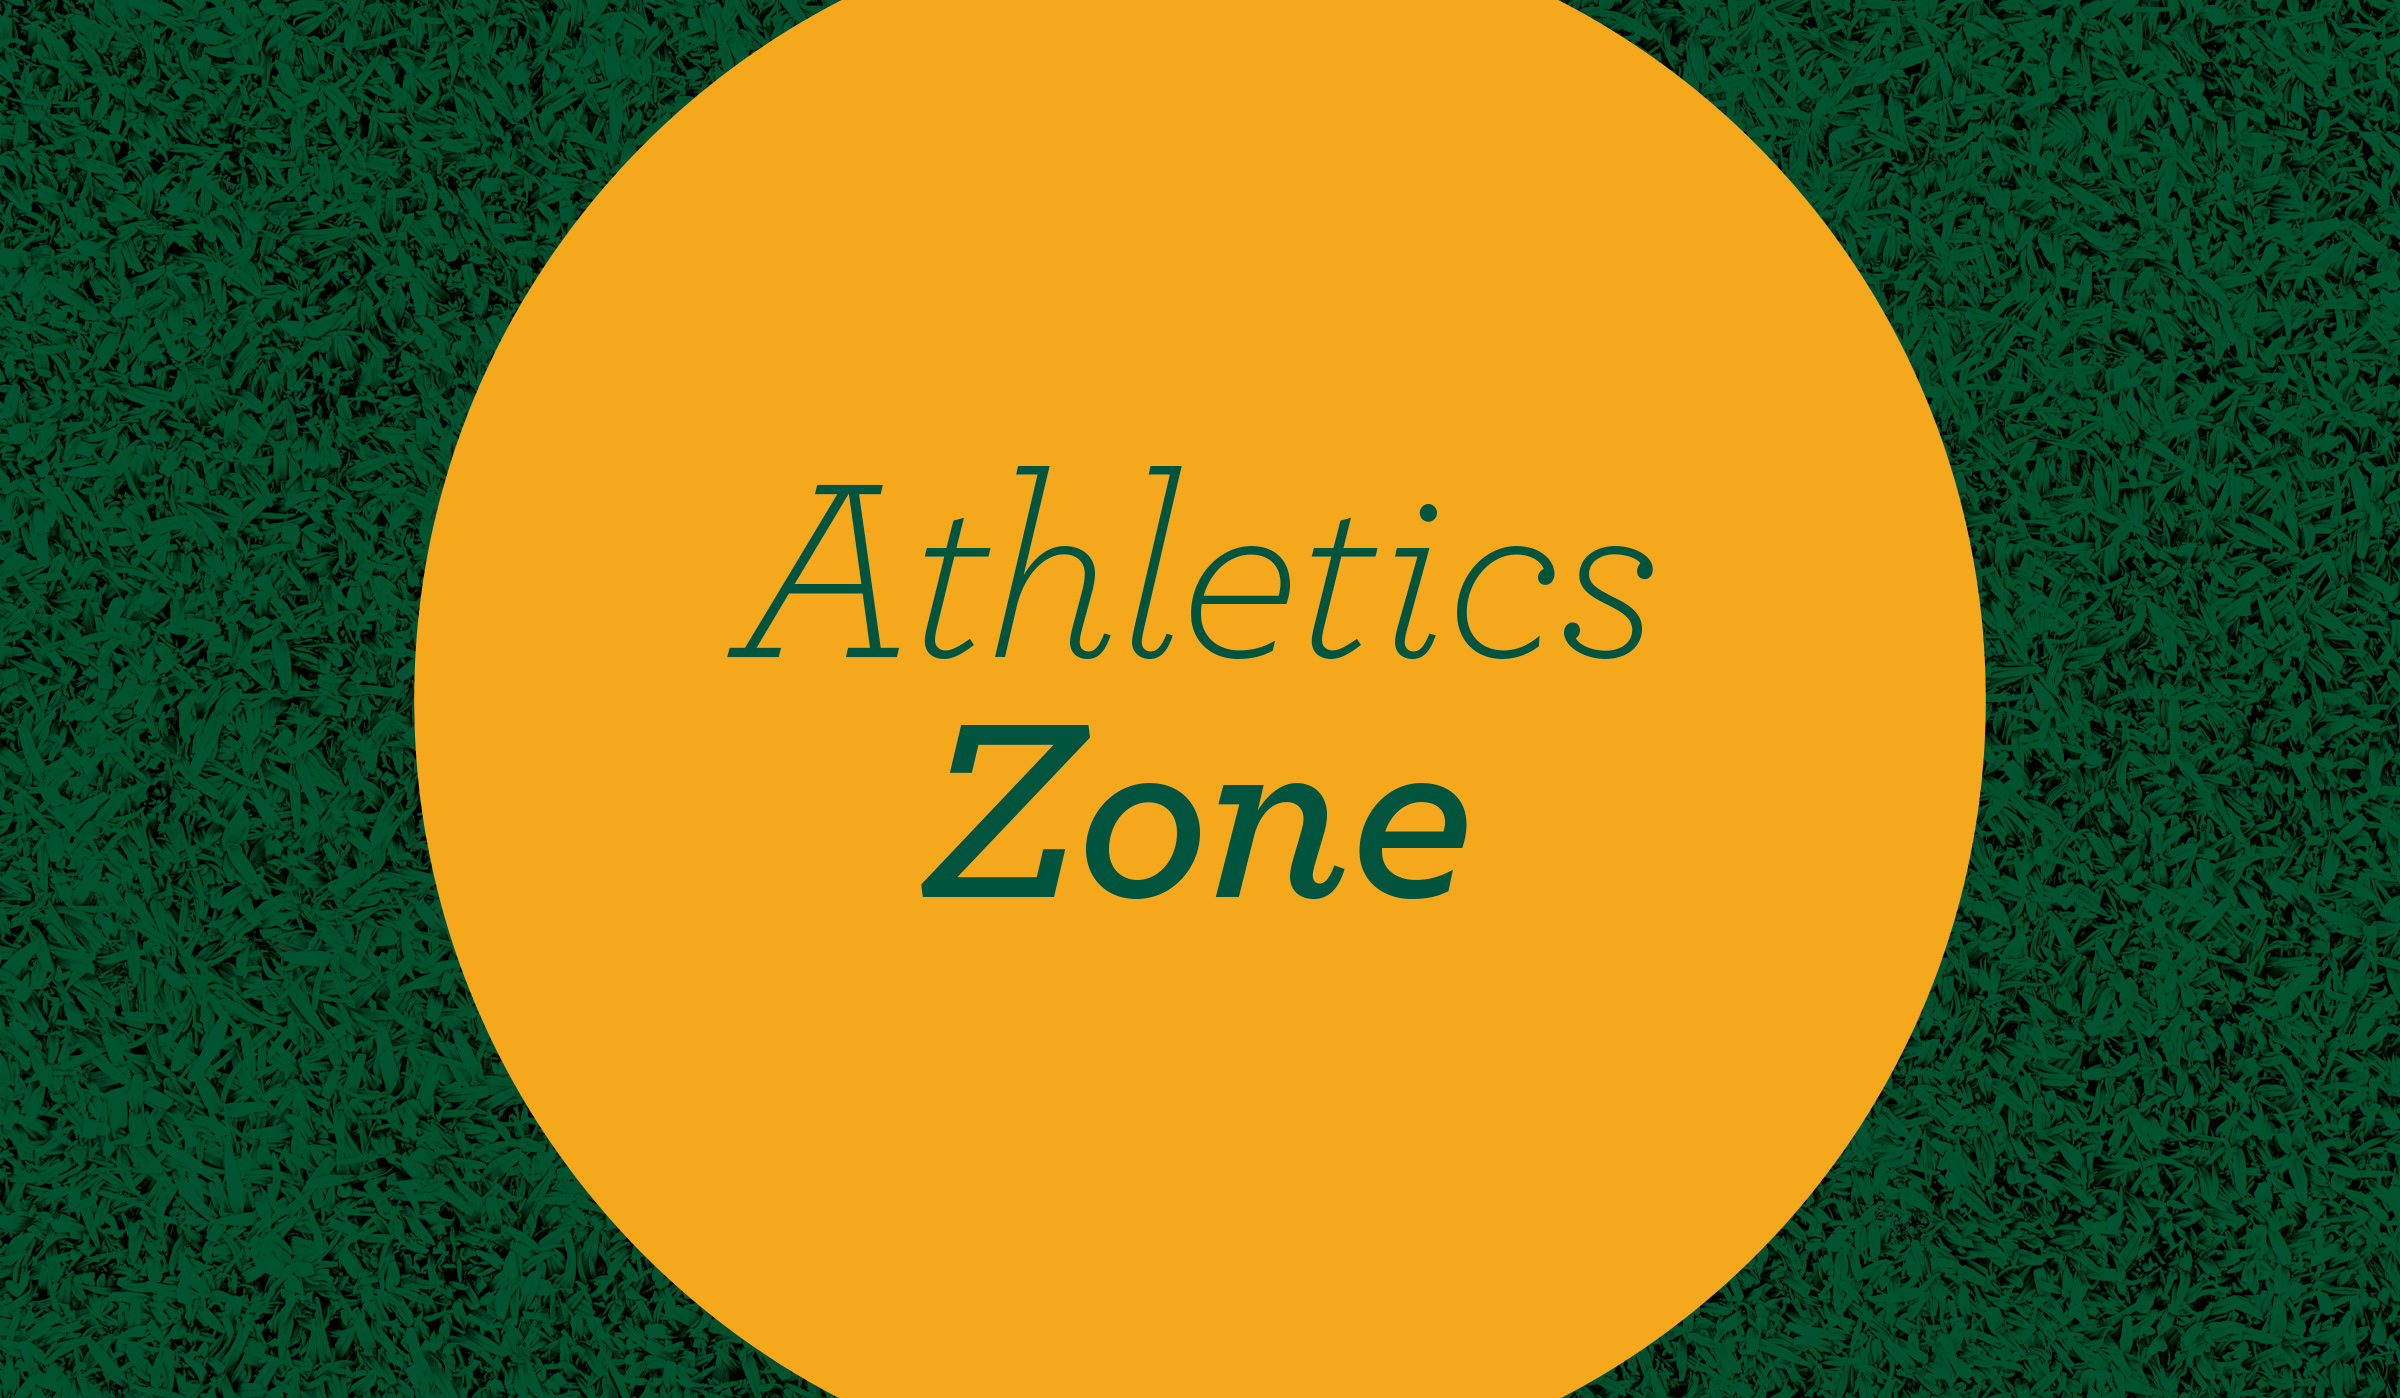 Athletics Zone